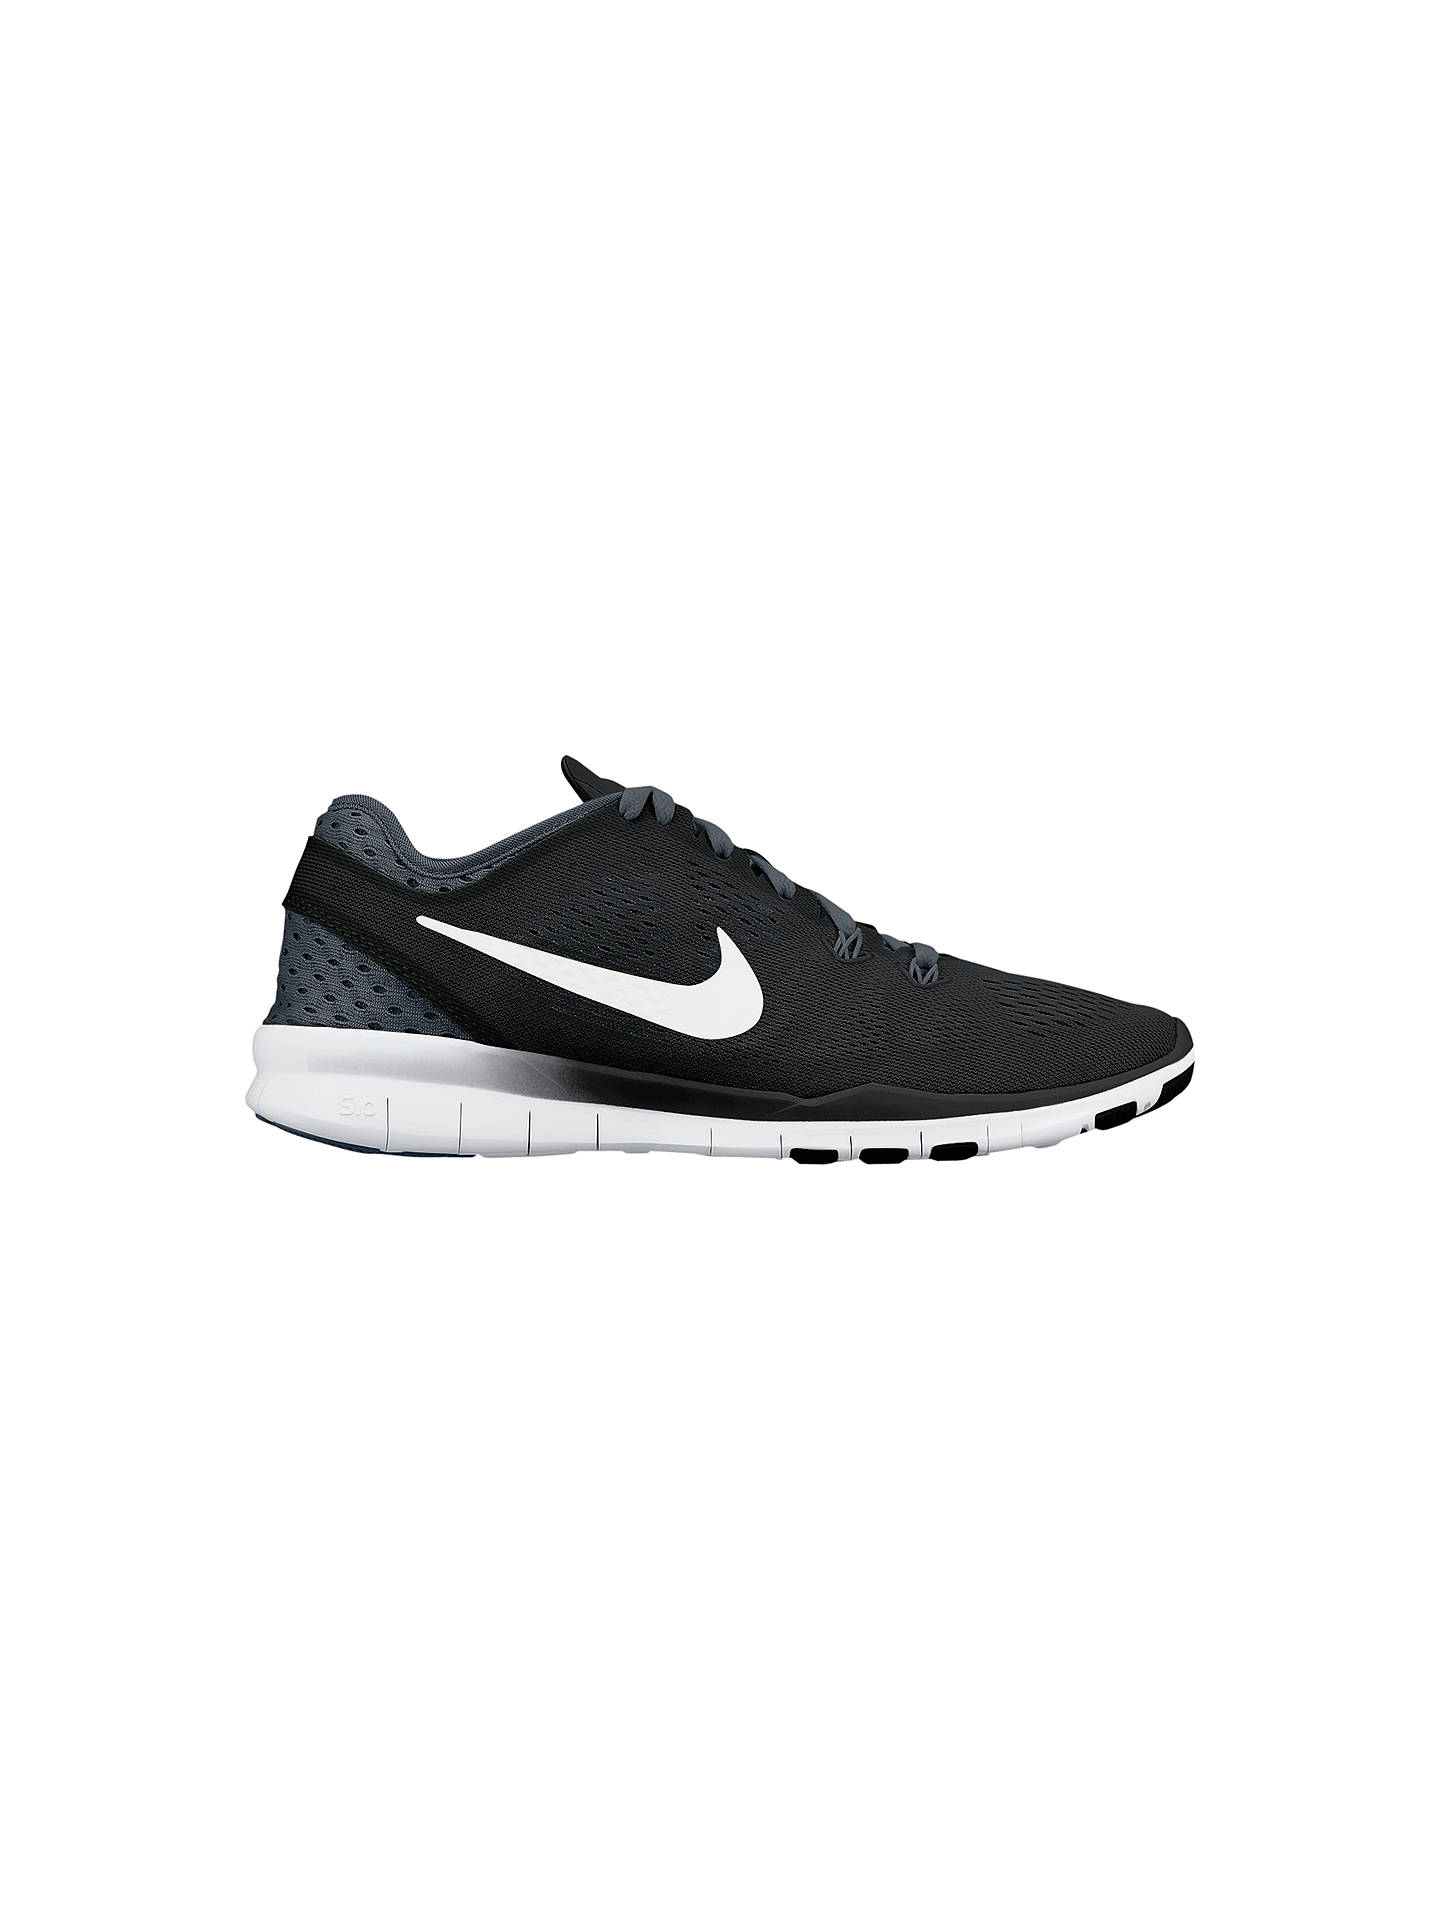 5d1837826cf BuyNike Free 5.0 TR Fit 5 Breathe Women s Cross Trainers